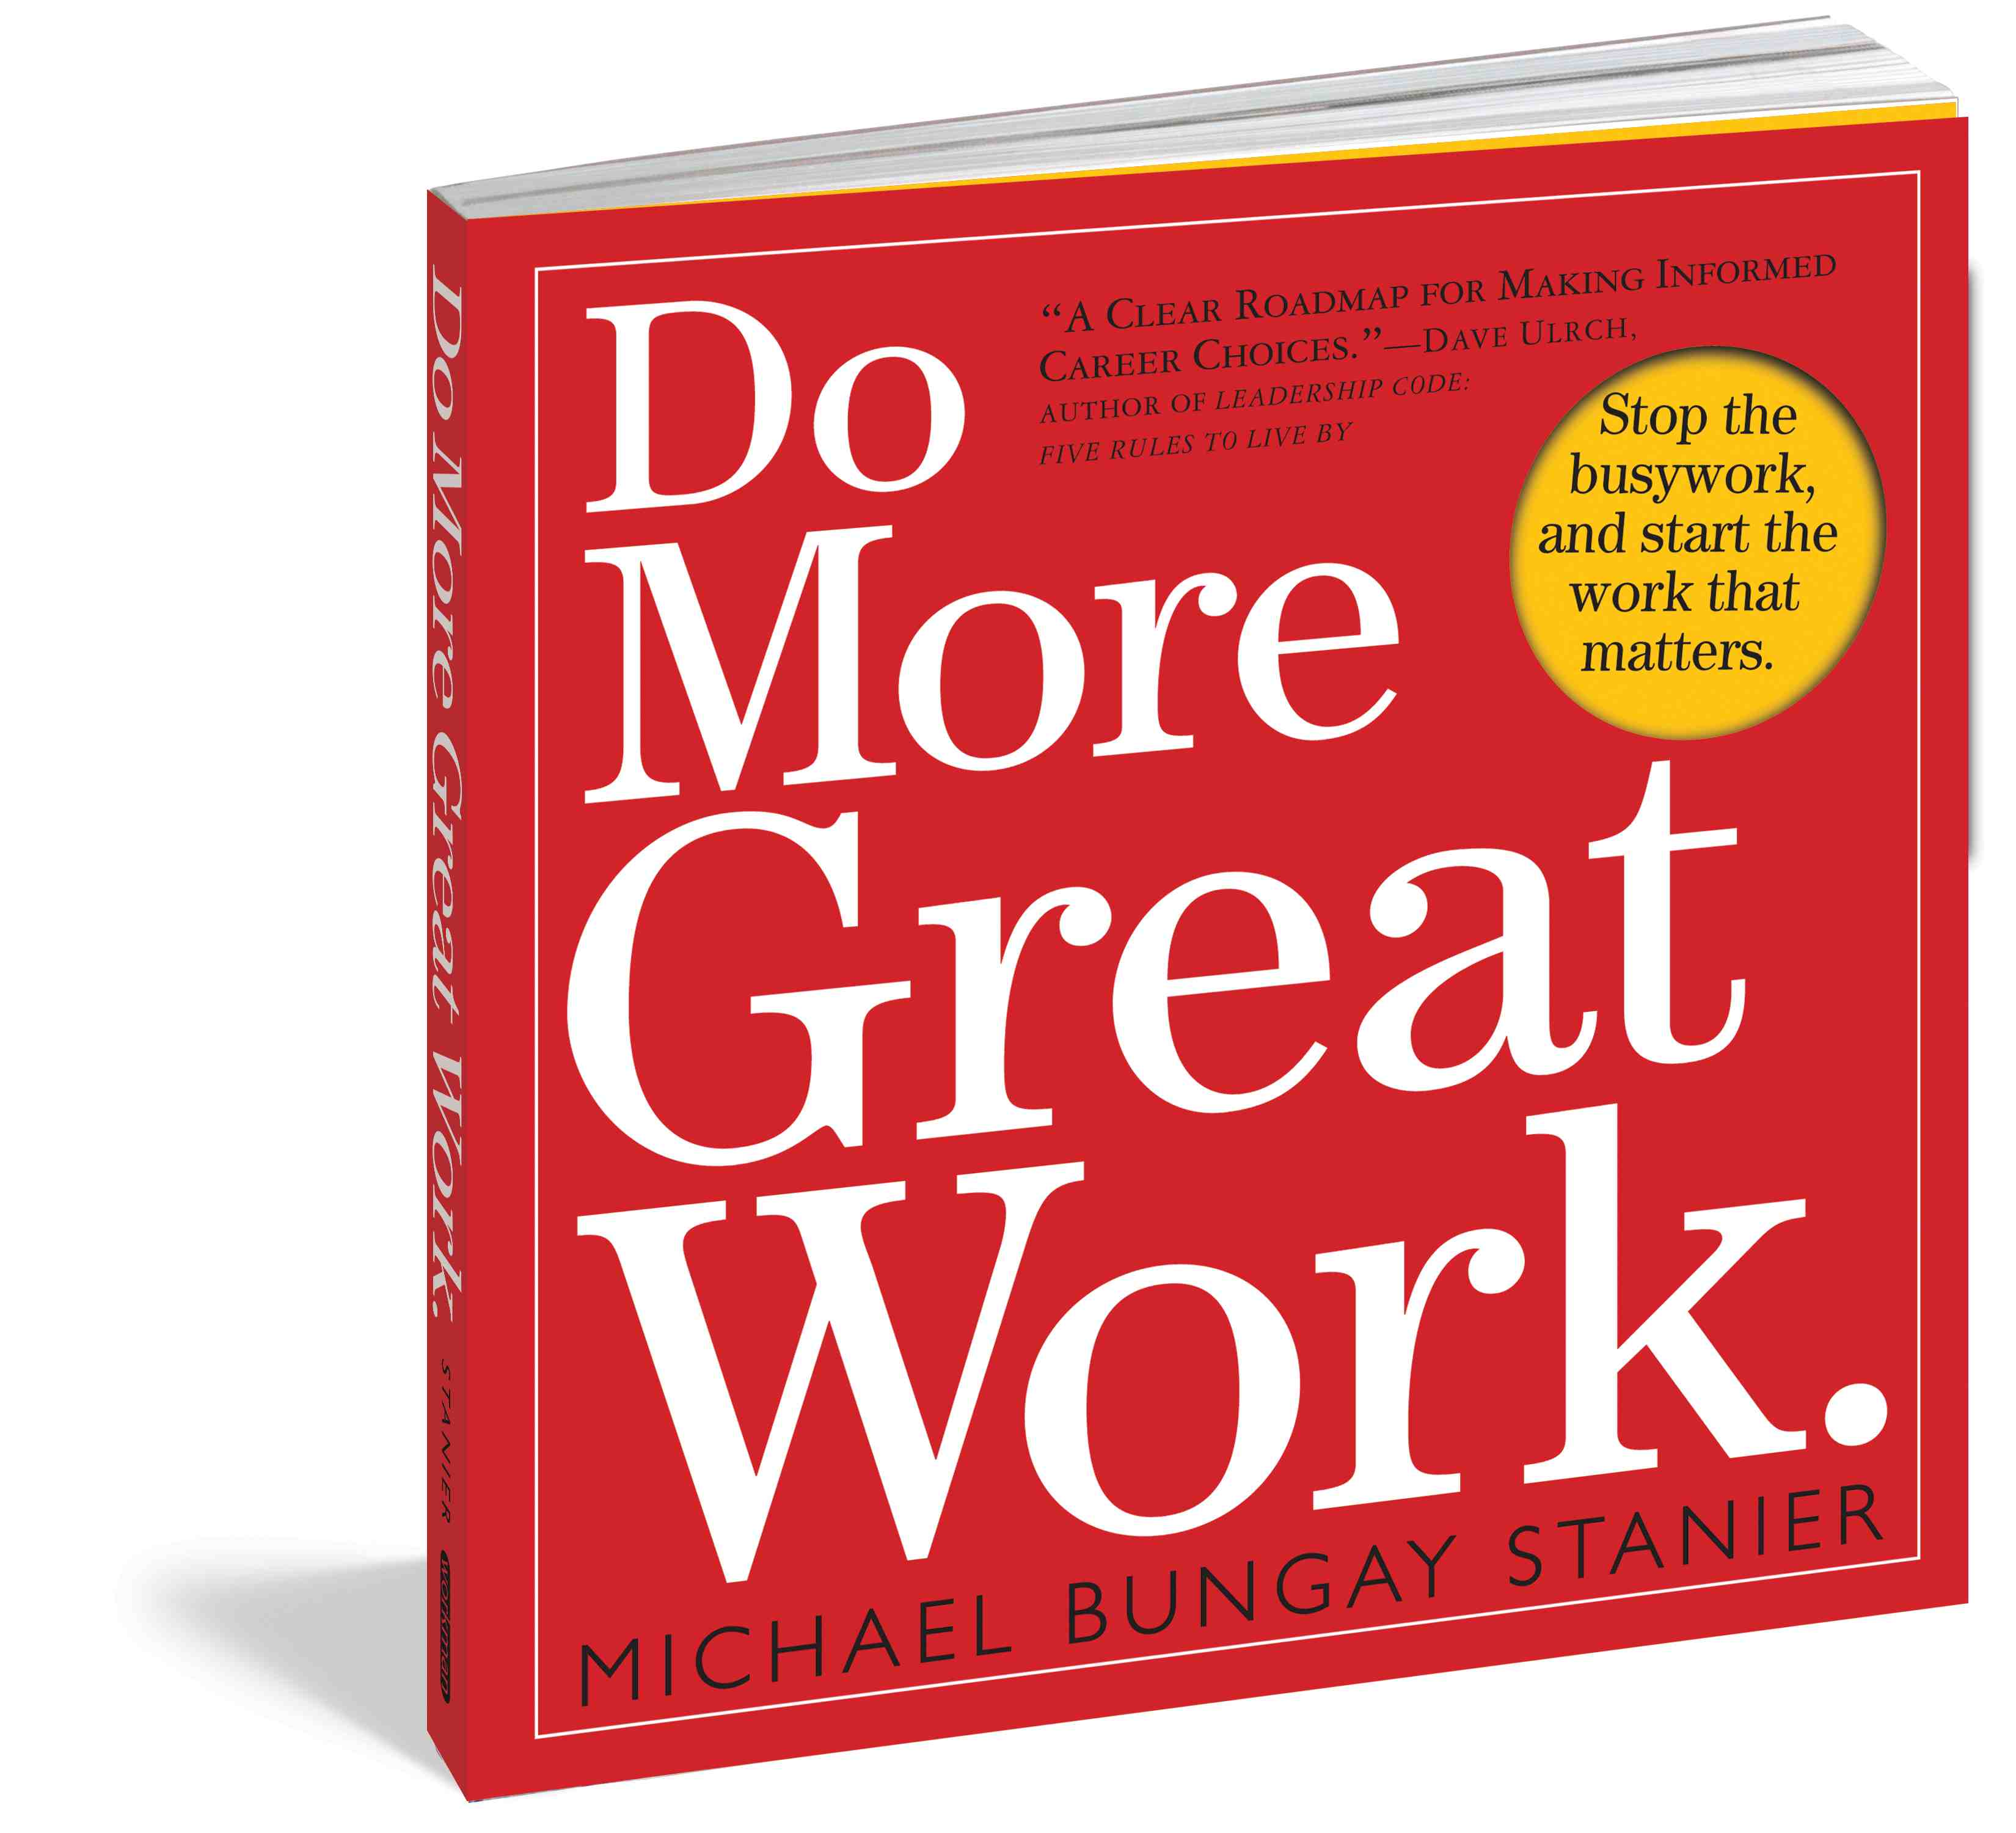 Do_more_great_work_book_cover